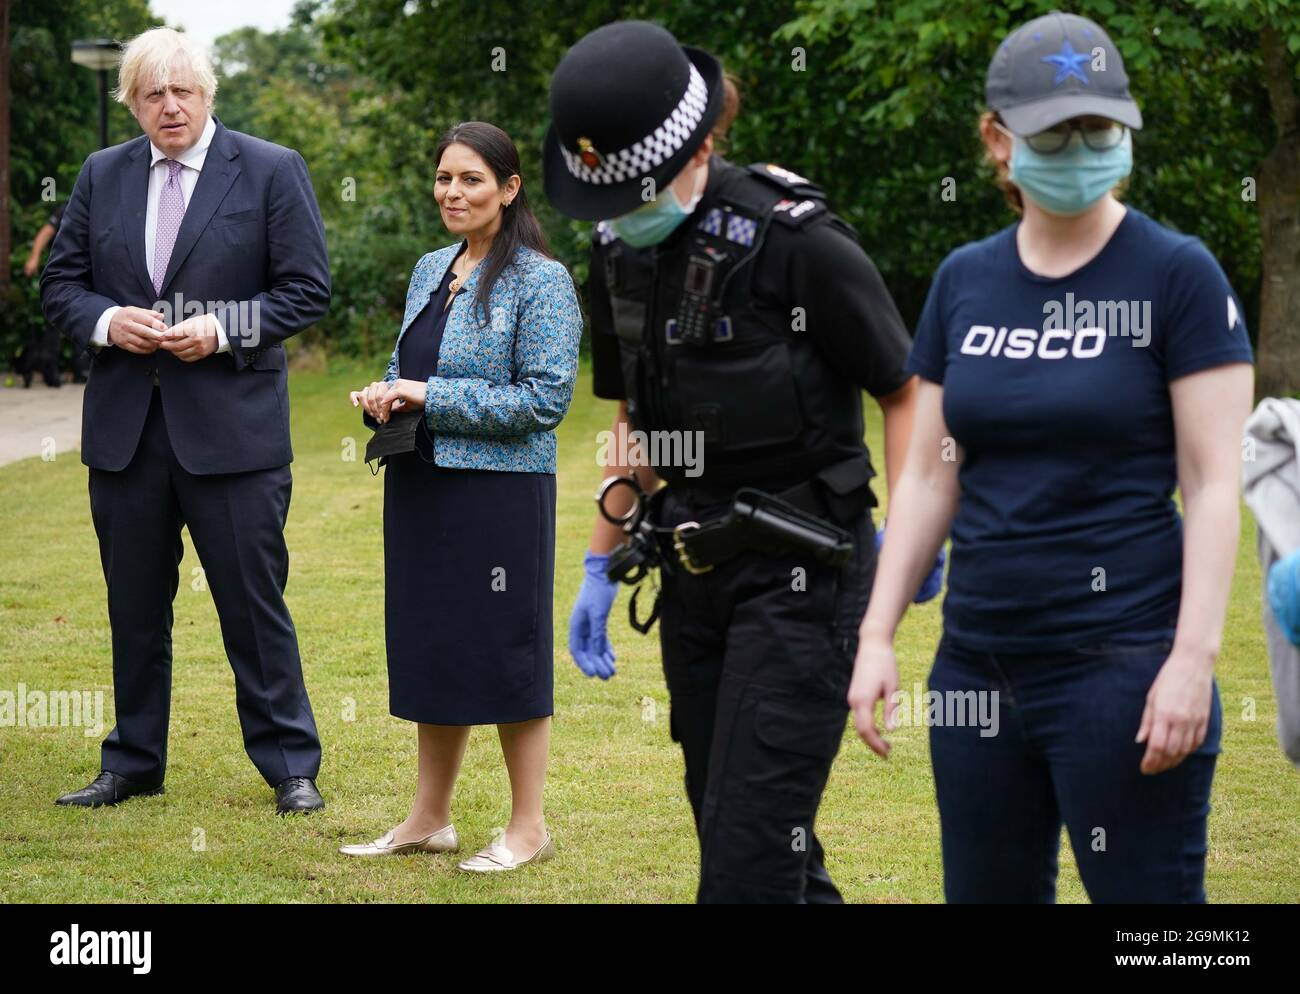 Prime Minister Boris Johnson and Home Secretary Priti Patel watch a search exercise during a visit to Surrey Police headquarters in Guildford, Surrey, to coincide with the publication of the government's Beating Crime Plan. Picture date: Tuesday July 27, 2021. Stock Photo